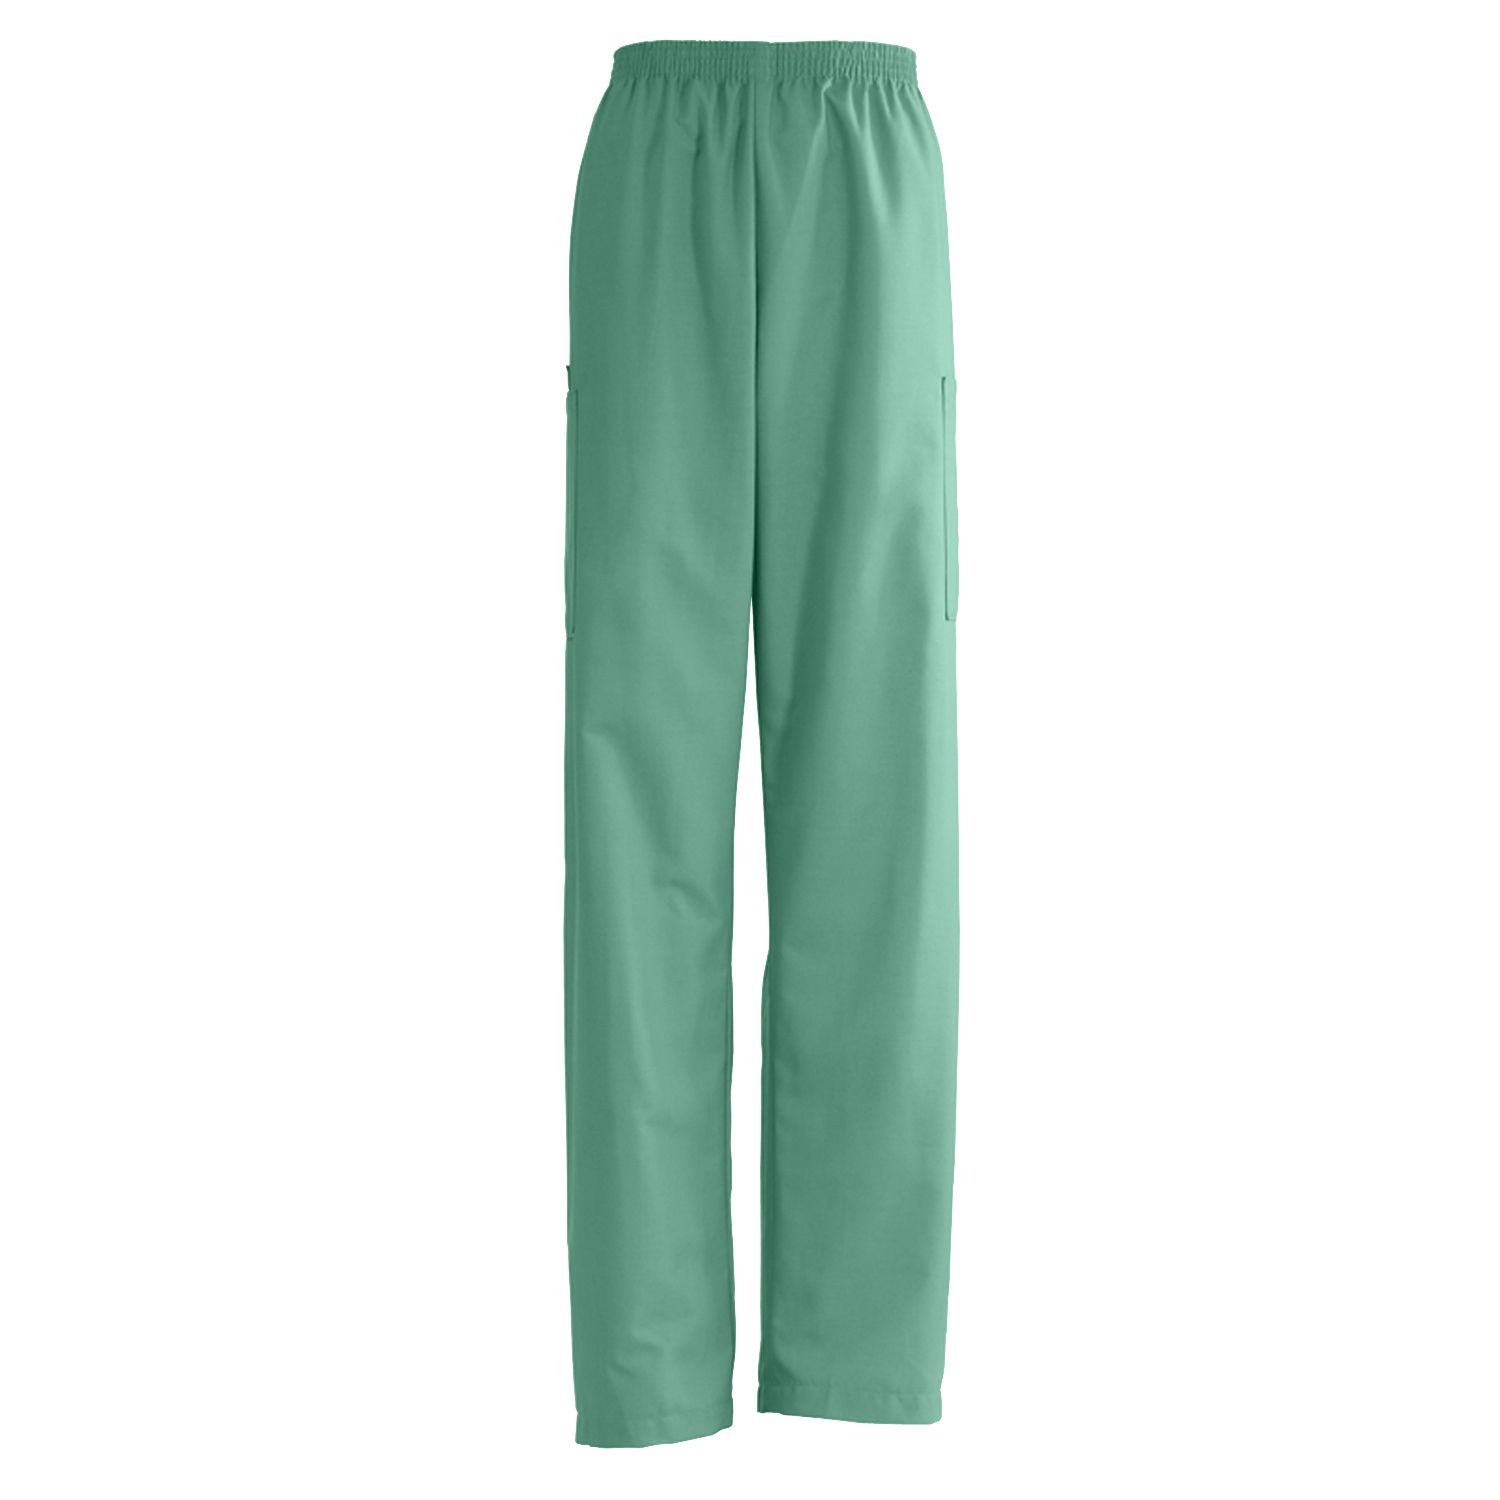 AngelStat Unisex Elastic Waist Cargo Scrub Pants - Jade, 2Xl, Long, XXL, Each - Model 674NTJXXLL